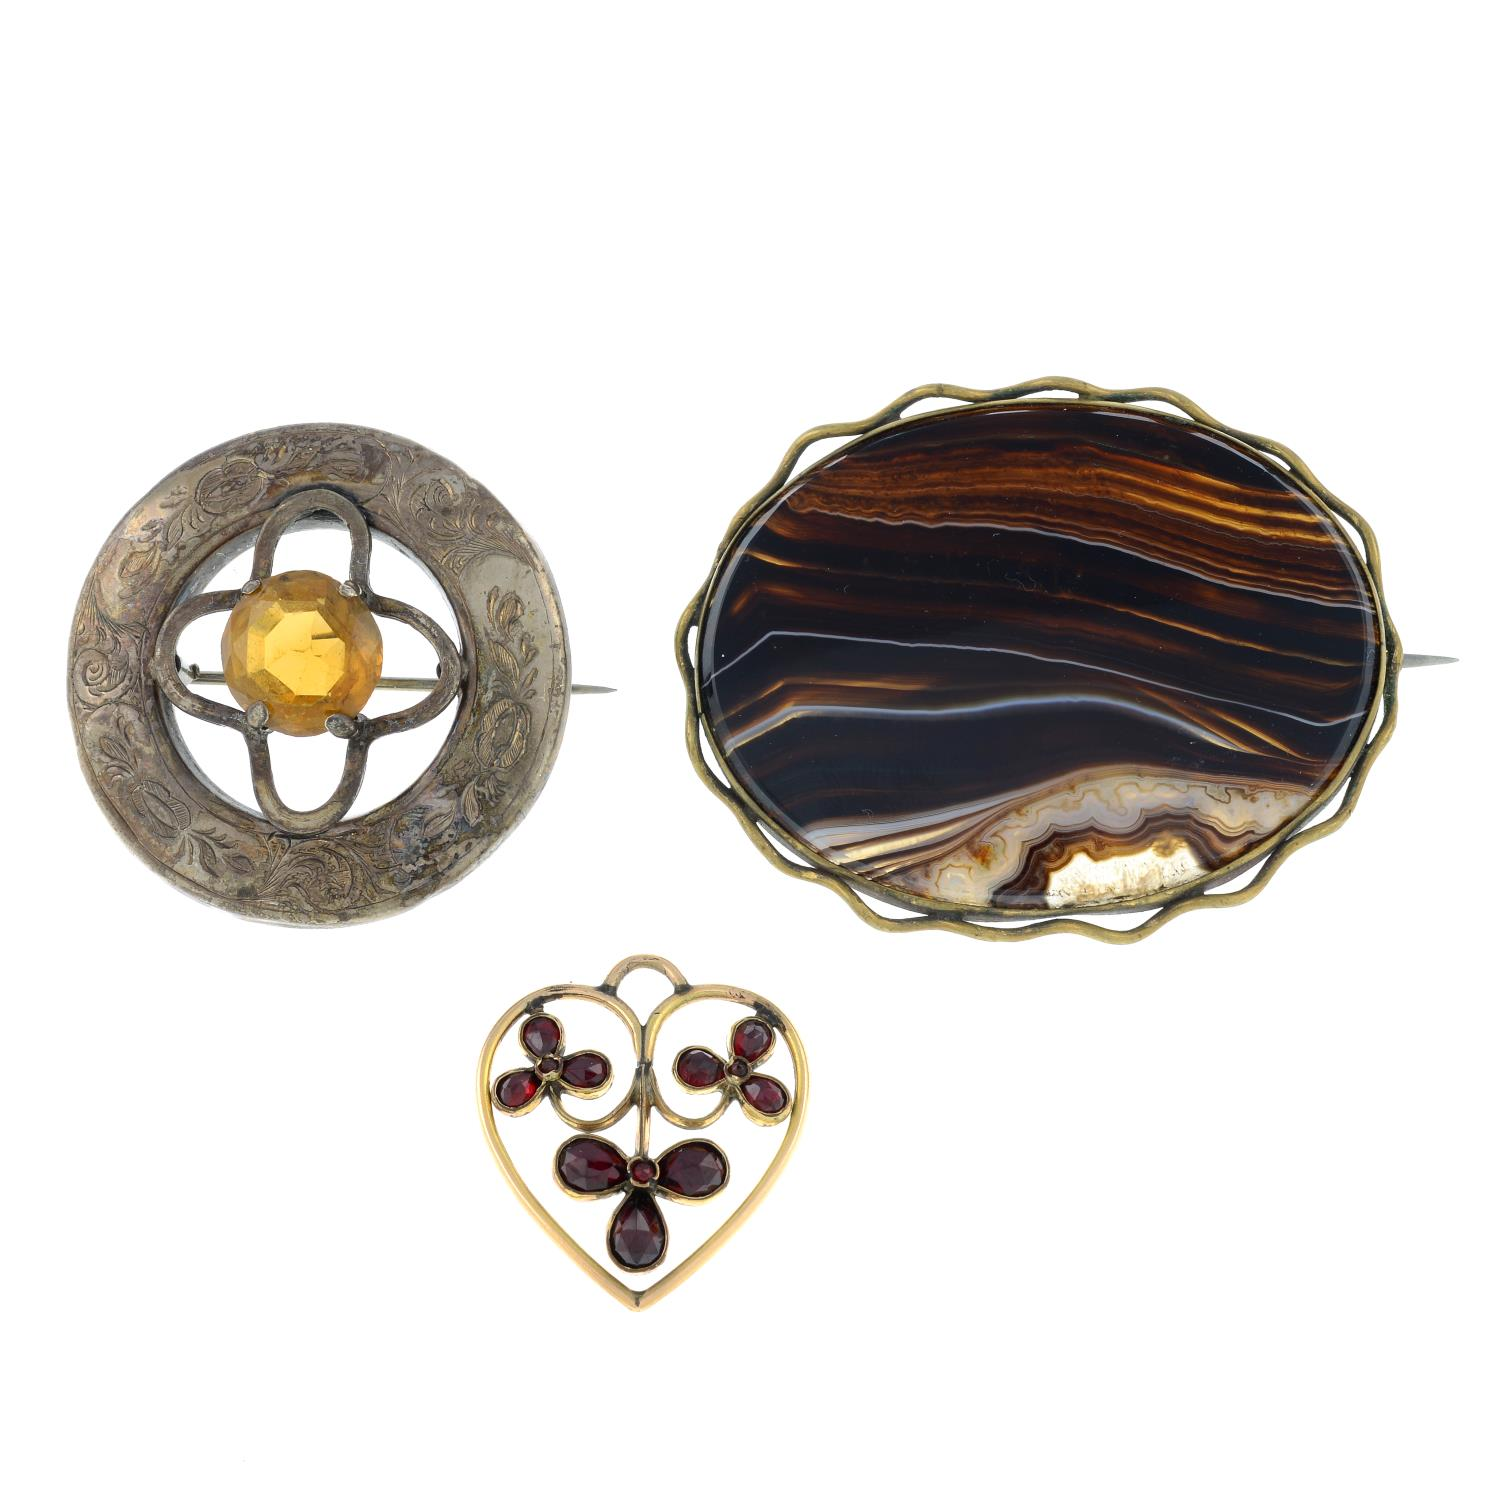 A selection of jewellery, to include an early 20th century garnet heart pendant.